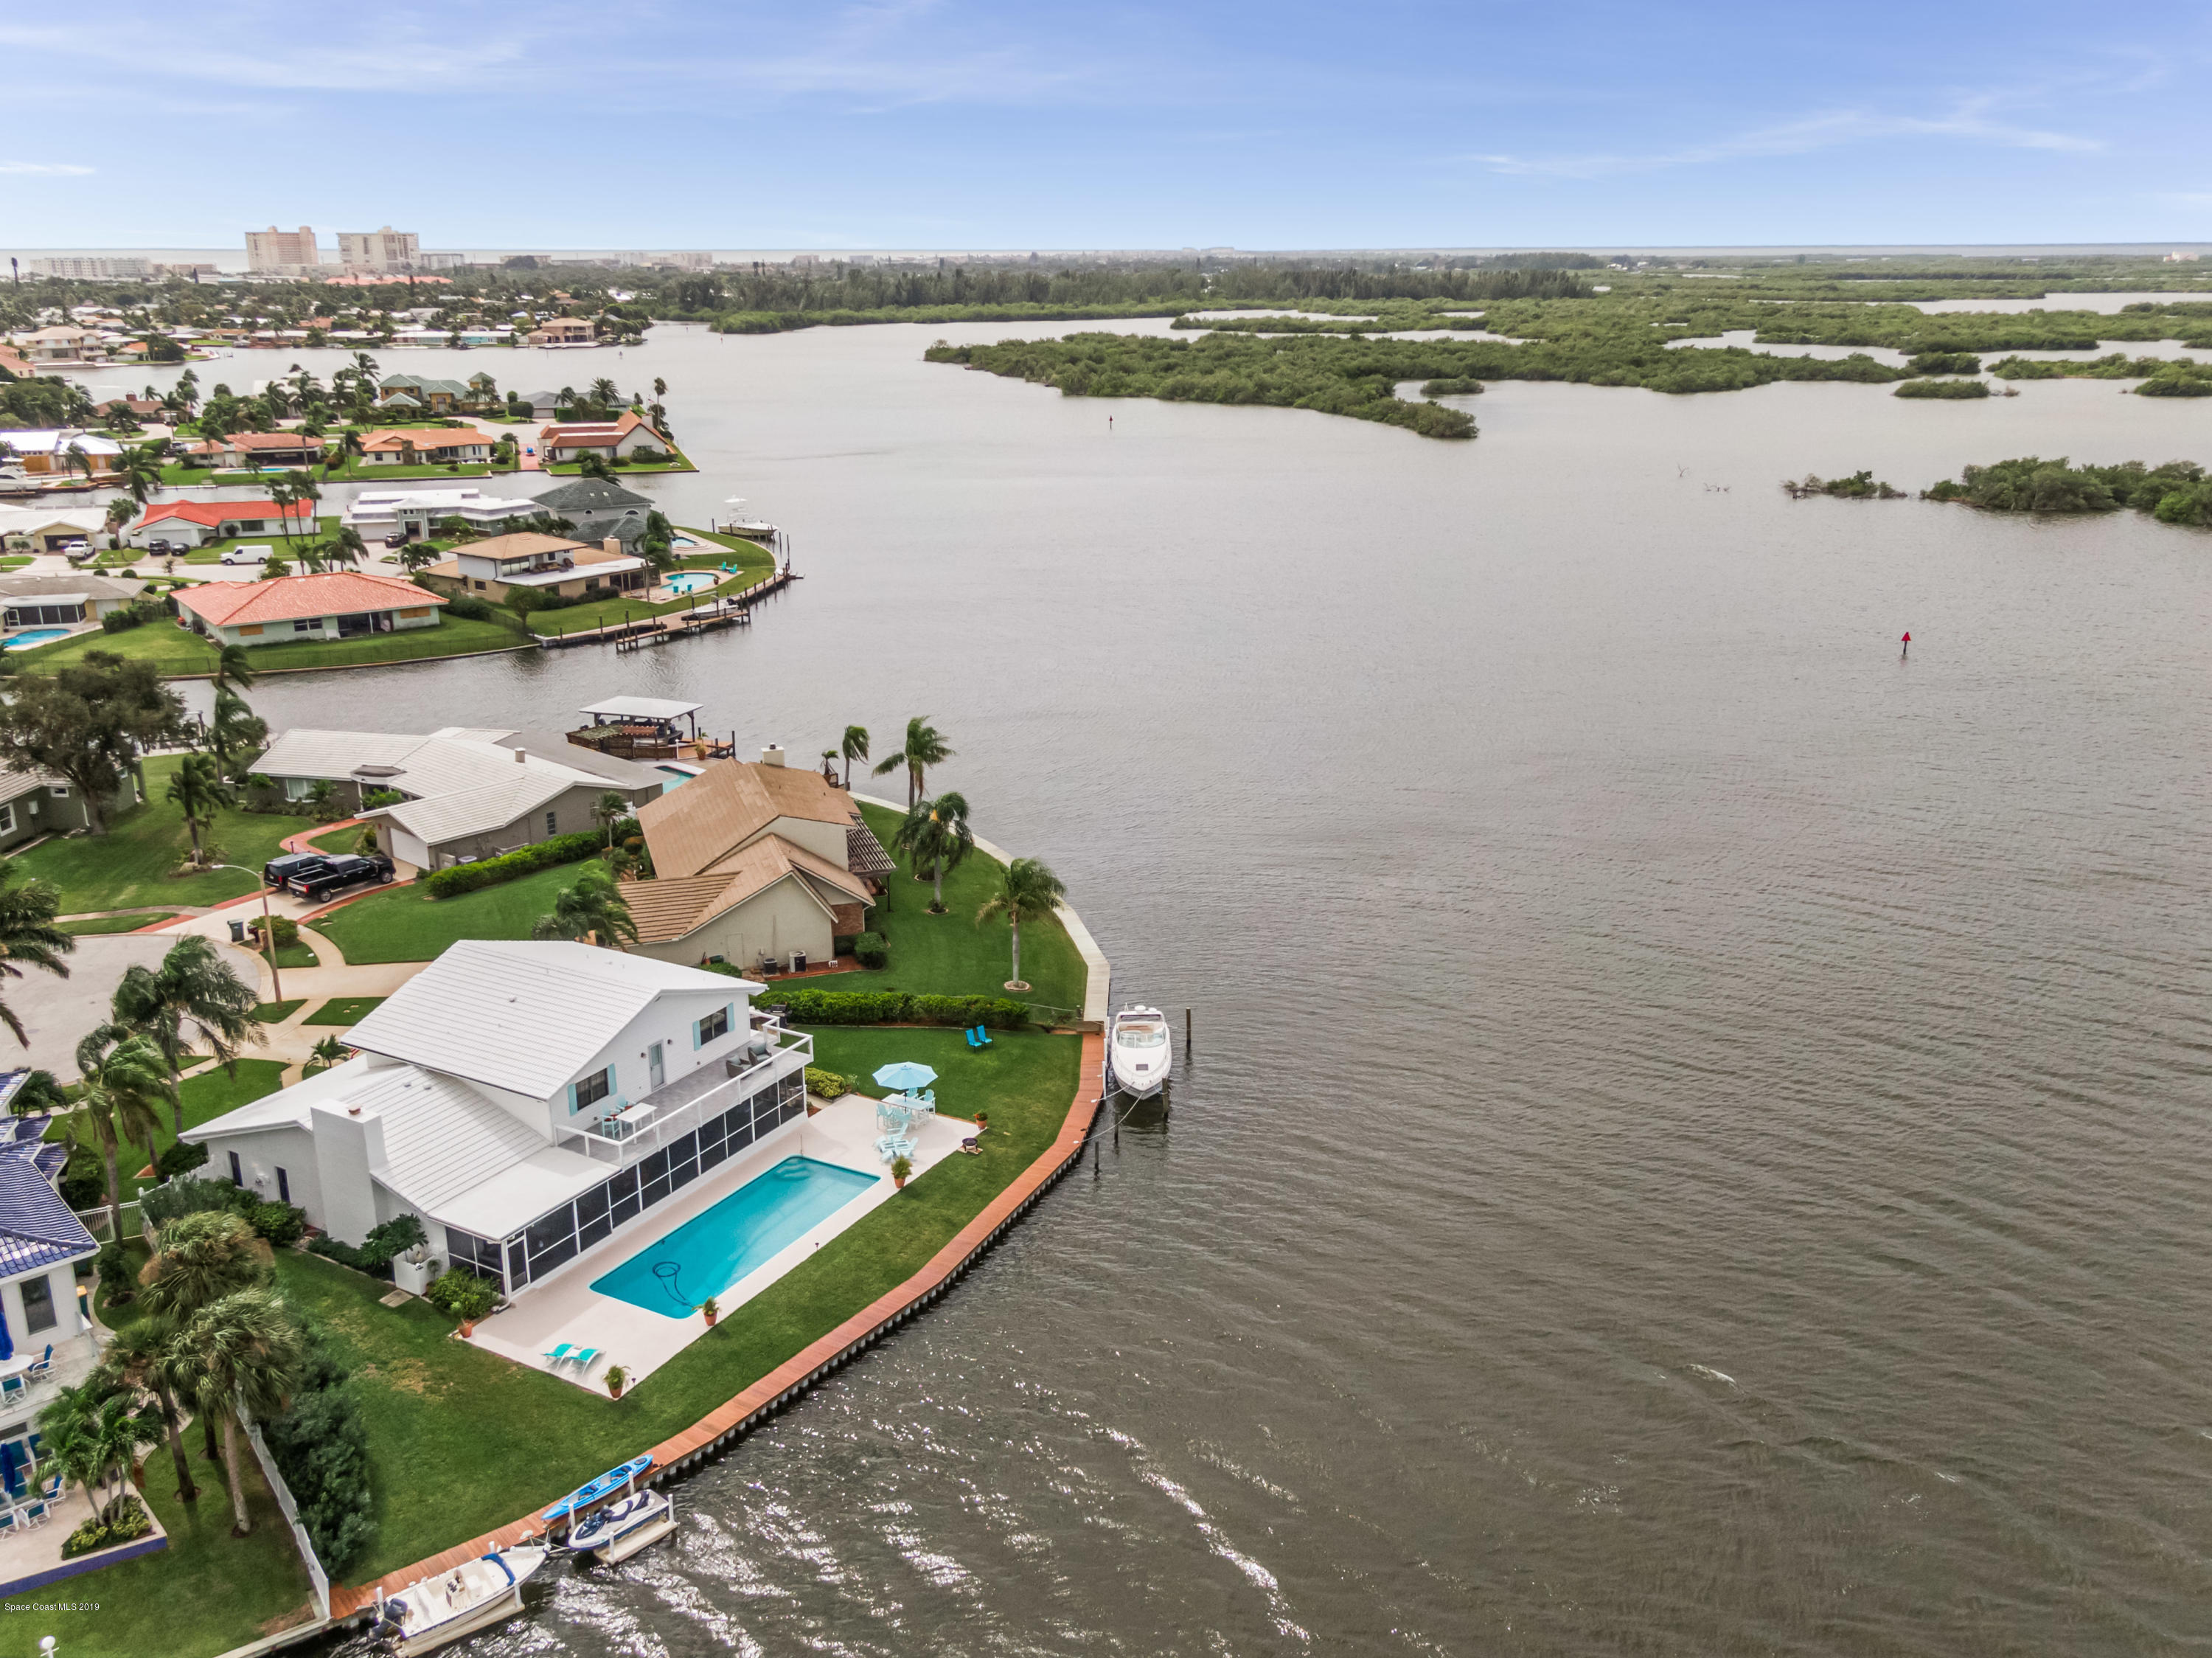 Single Family Homes for Sale at 295 Andros Cocoa Beach, Florida 32931 United States